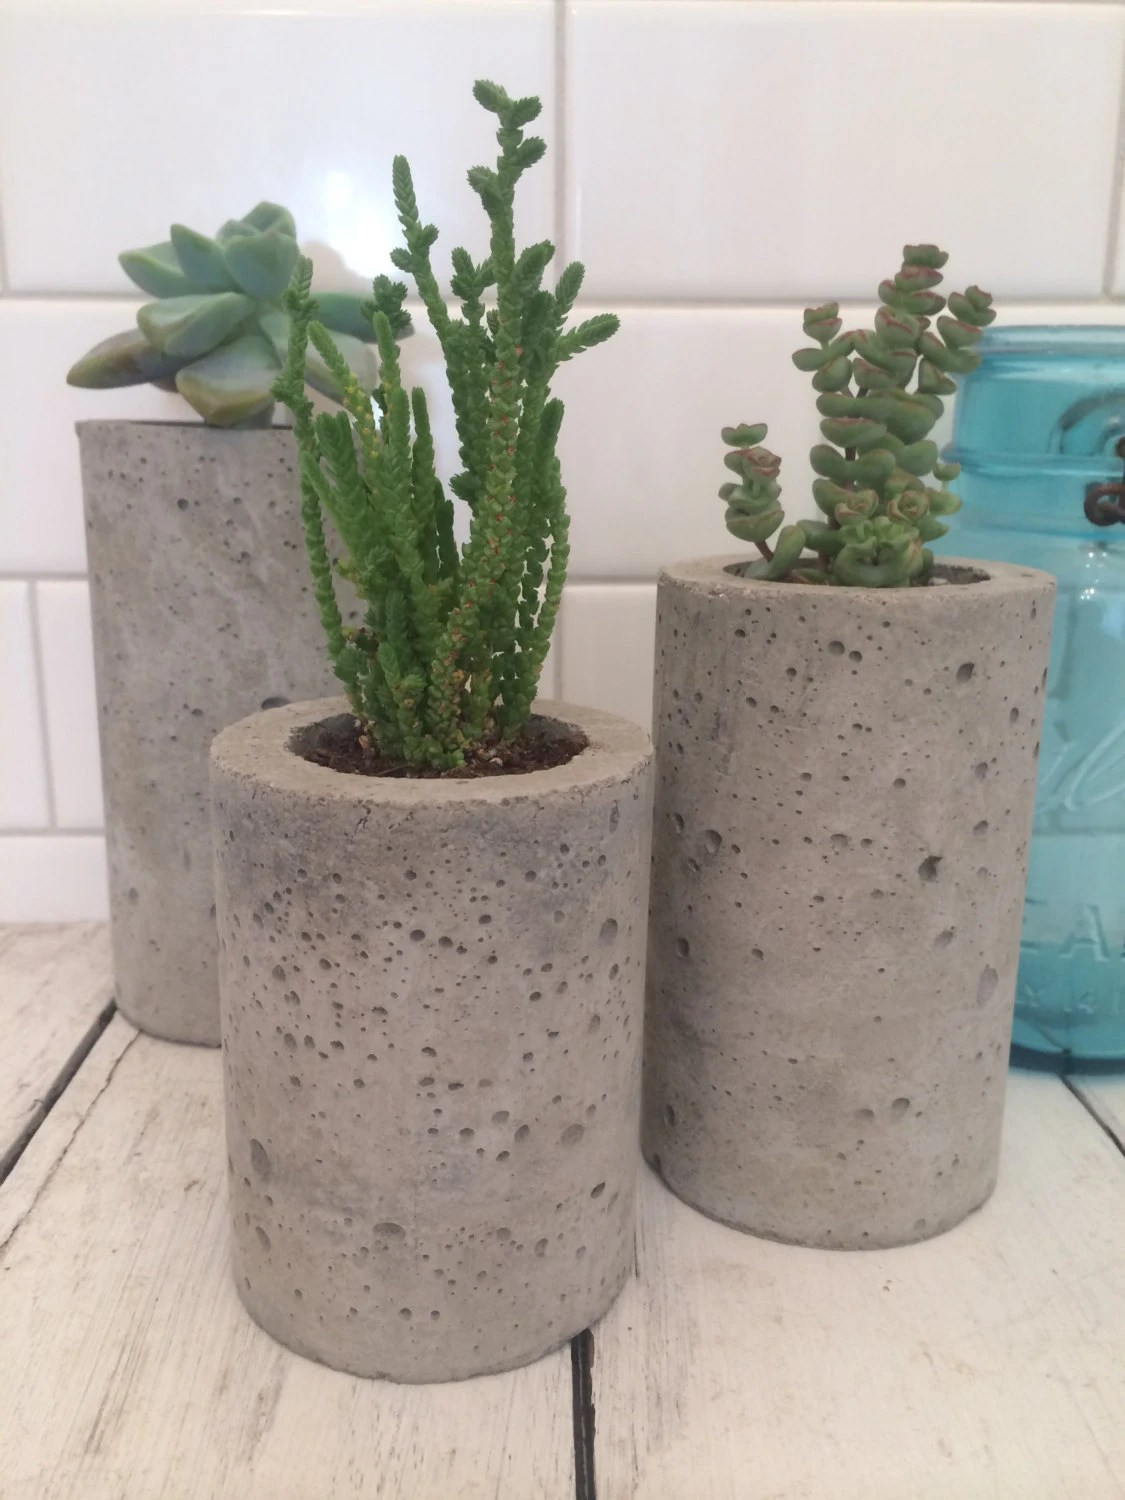 Succulent Planters Wholesale Concrete Succulent Planters Urba Planters Set Of 3 By